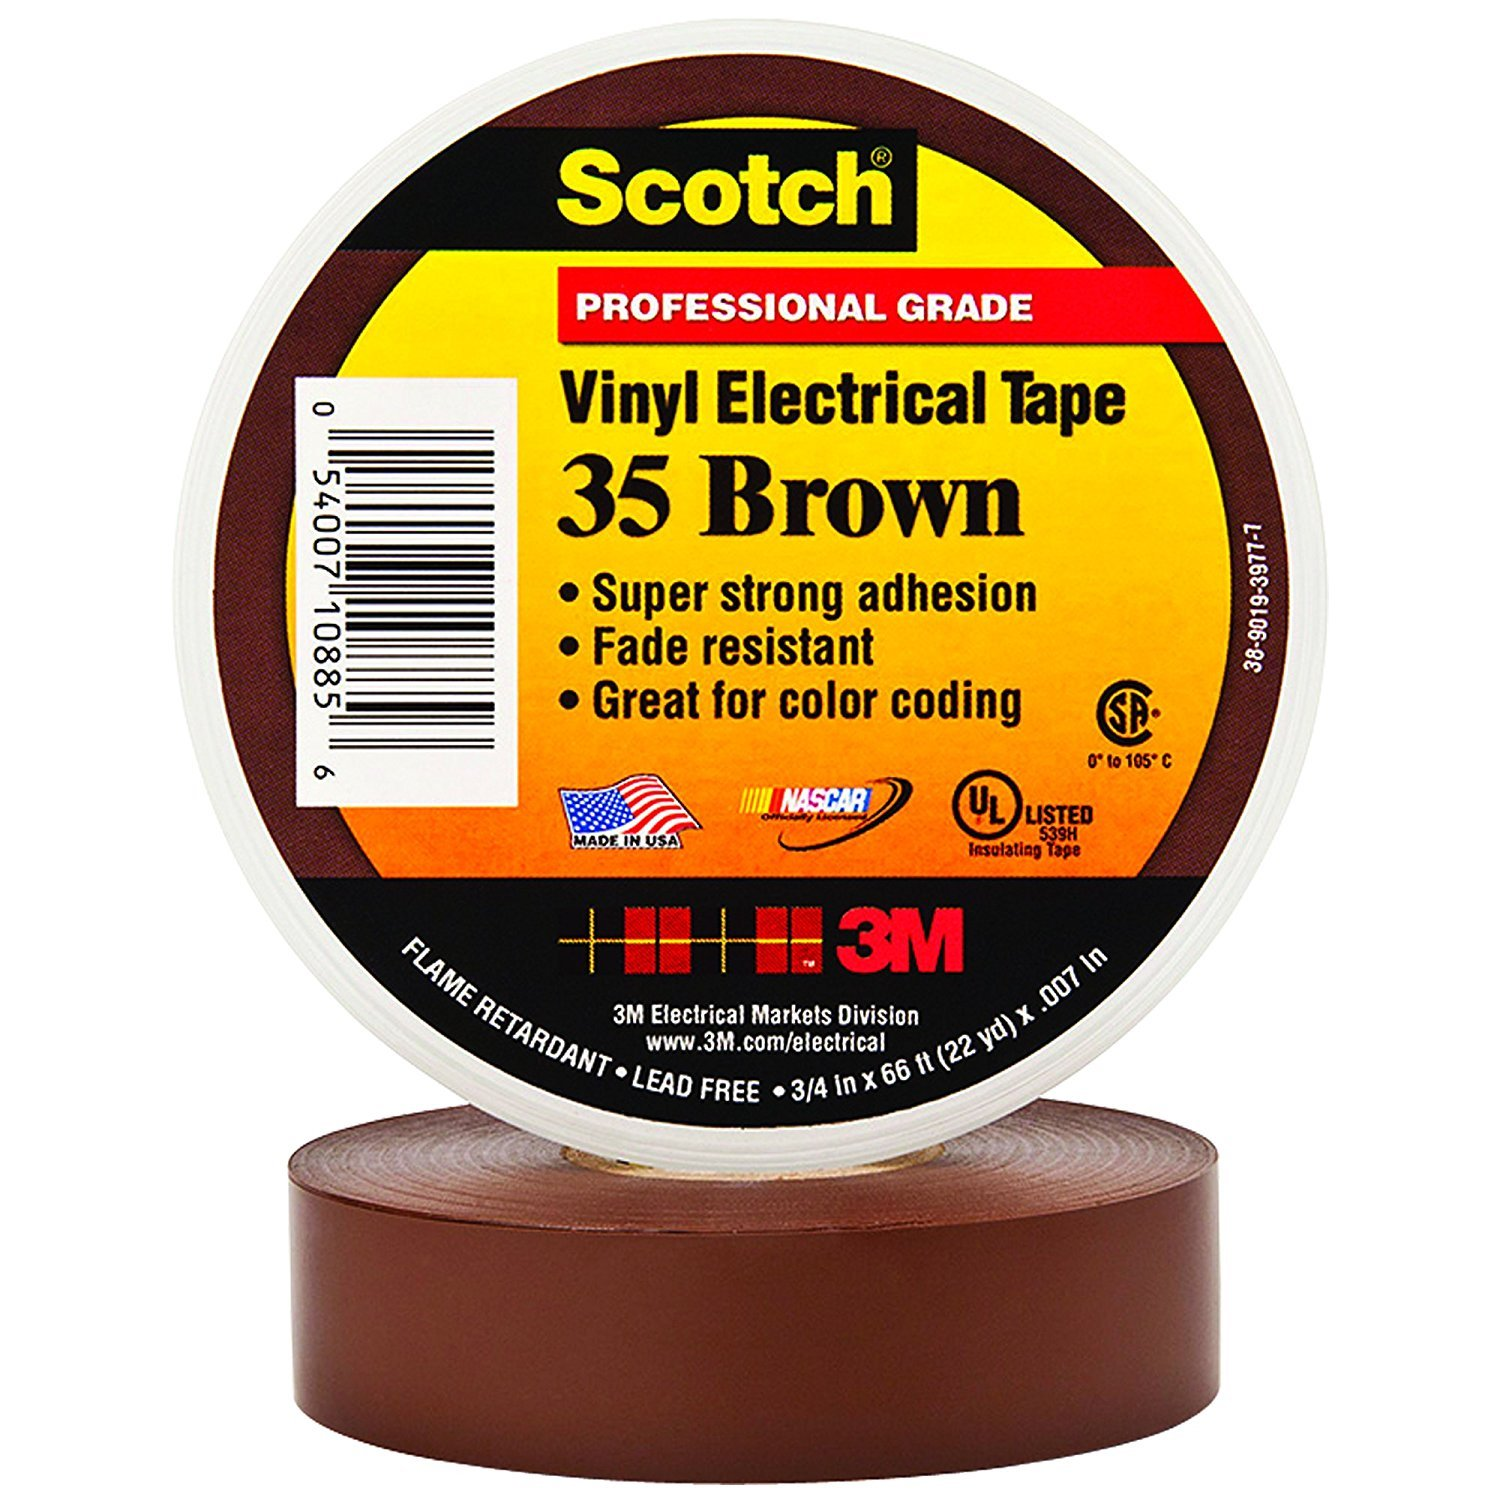 BOX USA BT96403510PKN Brown 3M 35 Electrical Tape, 7 mil, 3/4'' x 66' (Pack of 10)